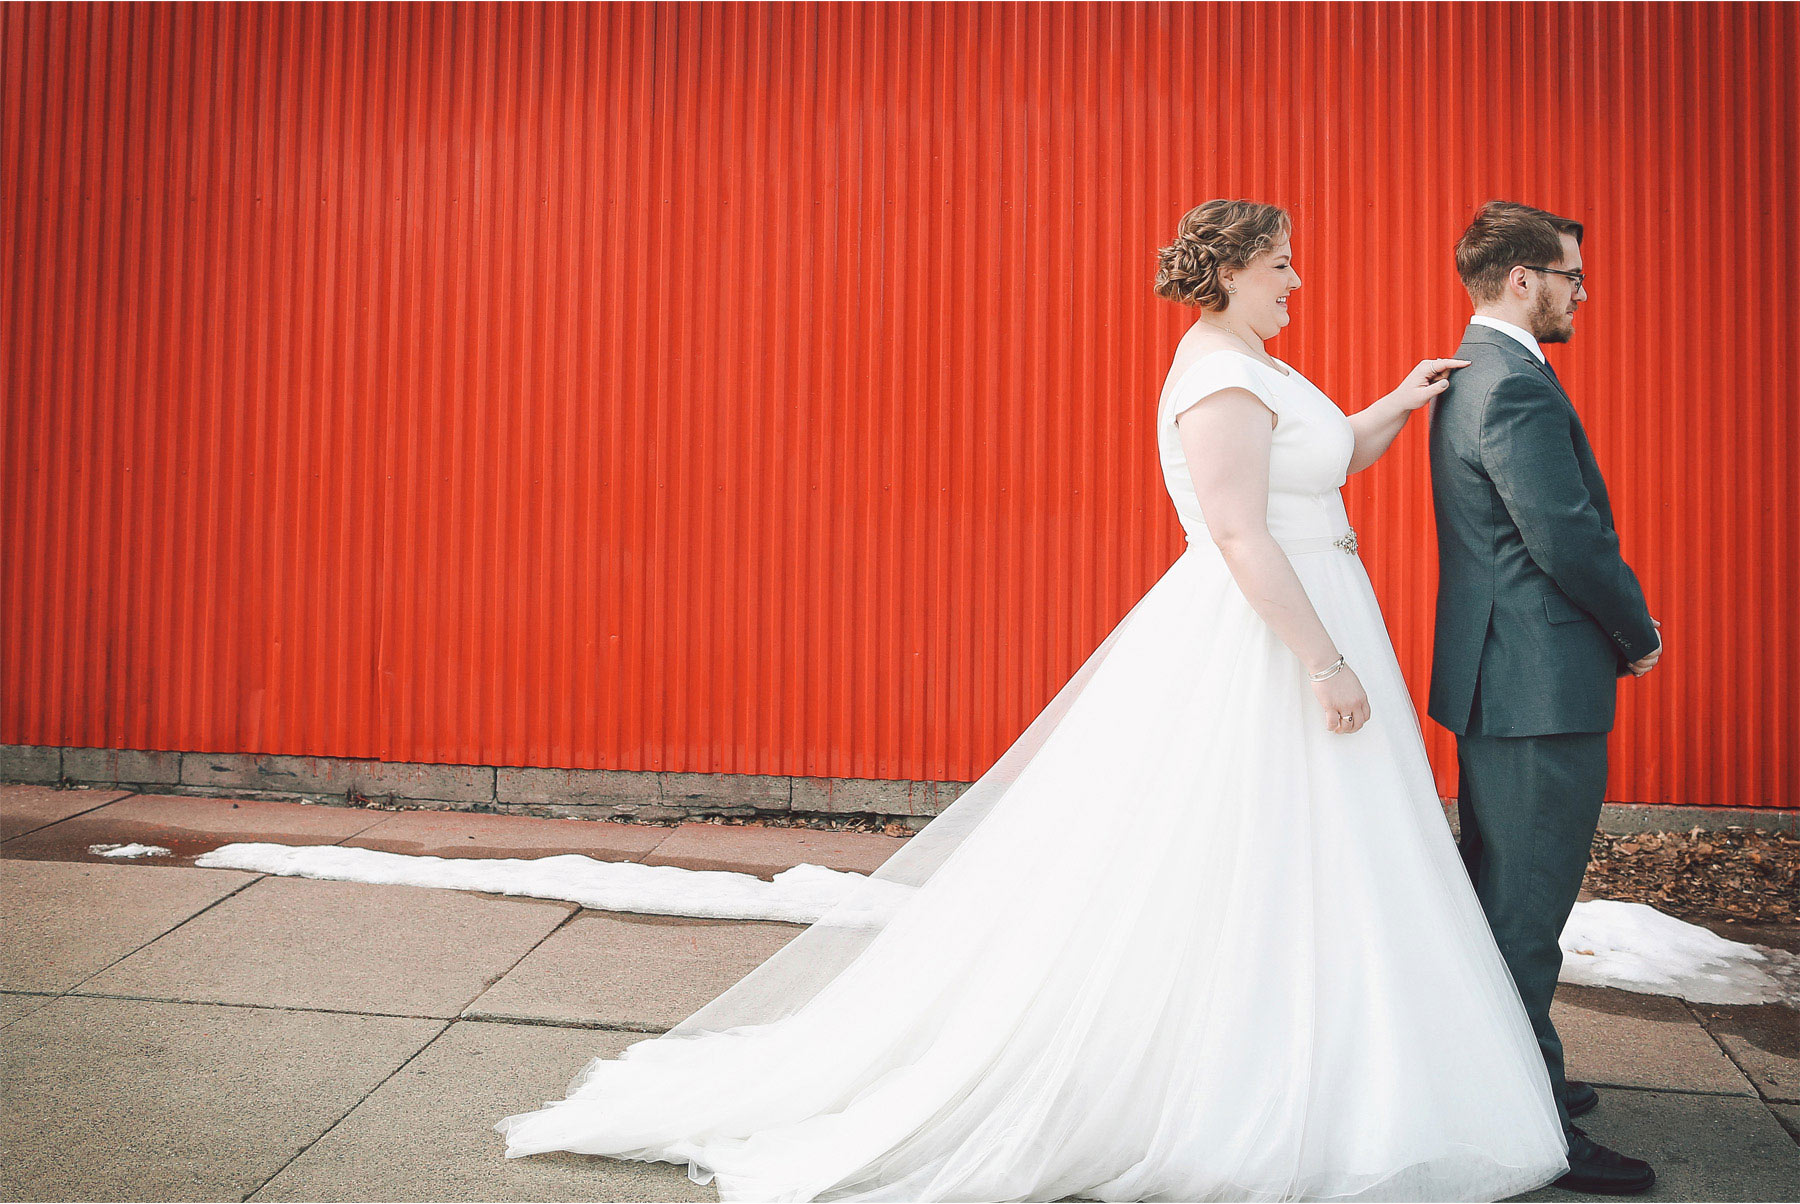 04-Minneapolis-Wedding-Photography-by-Vick-First-Look-Libby-and-Nathan.jpg